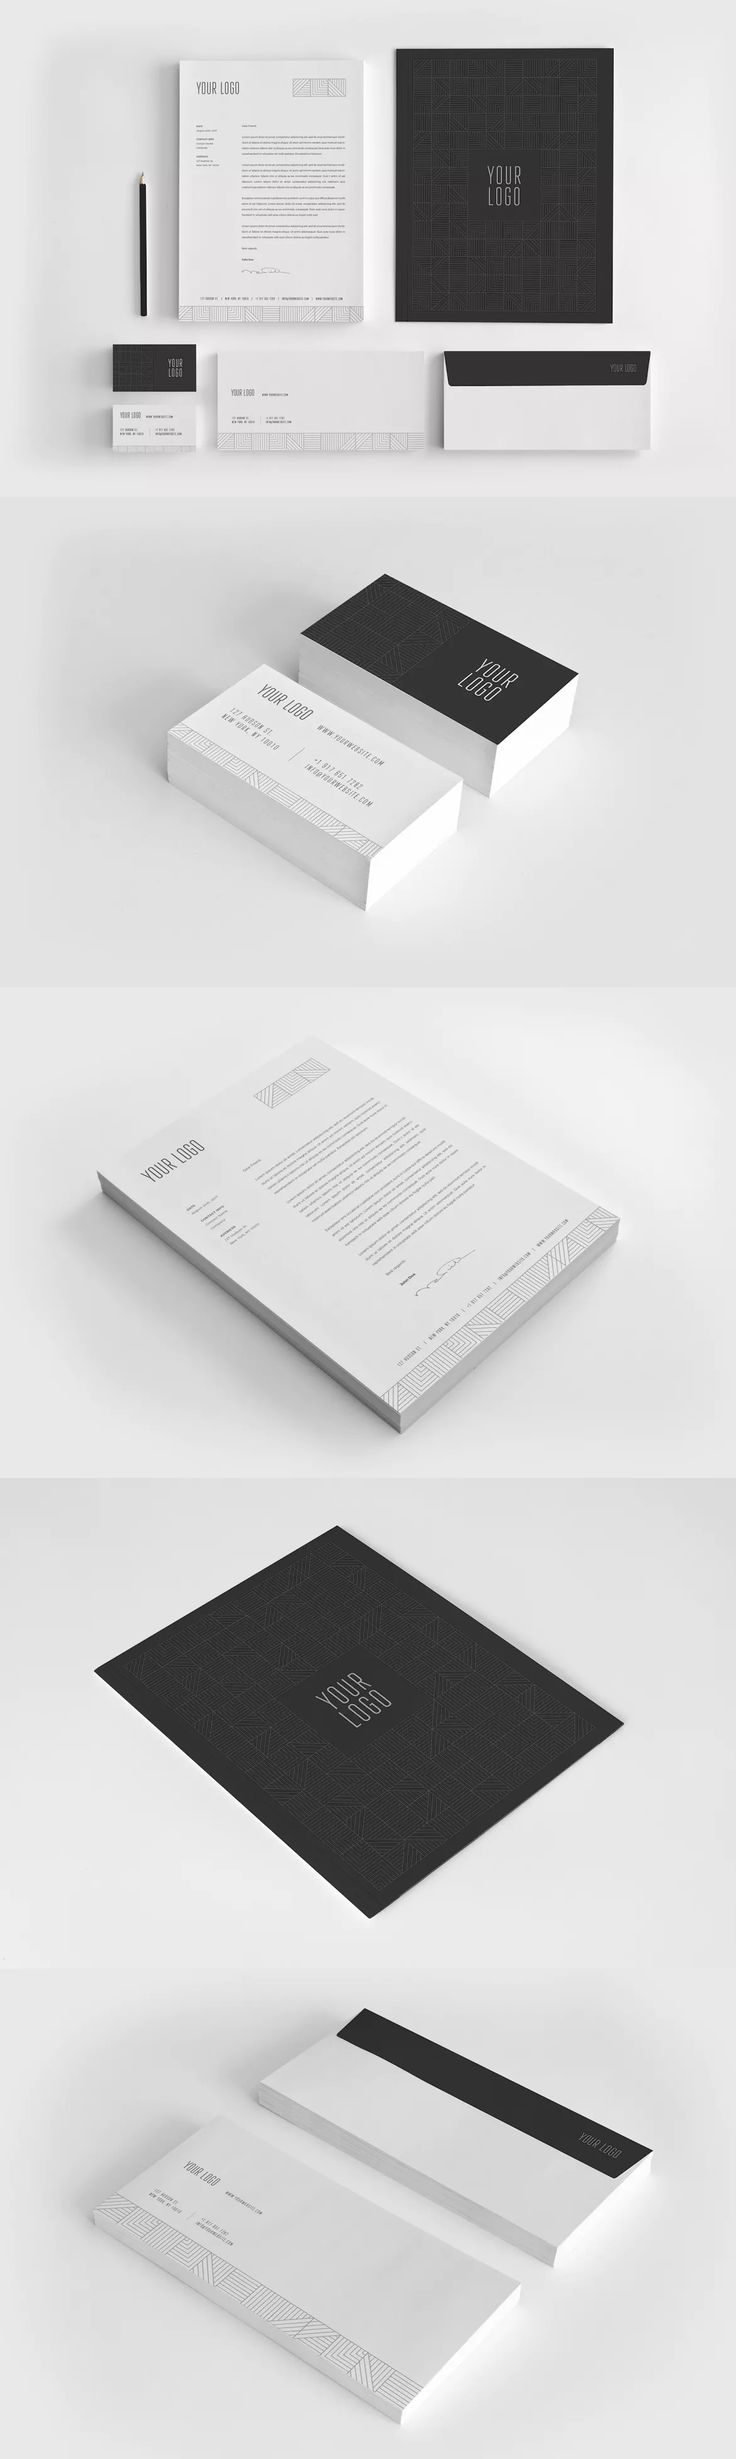 62 best Corporate Identity Template images on Pinterest | Corporate ...